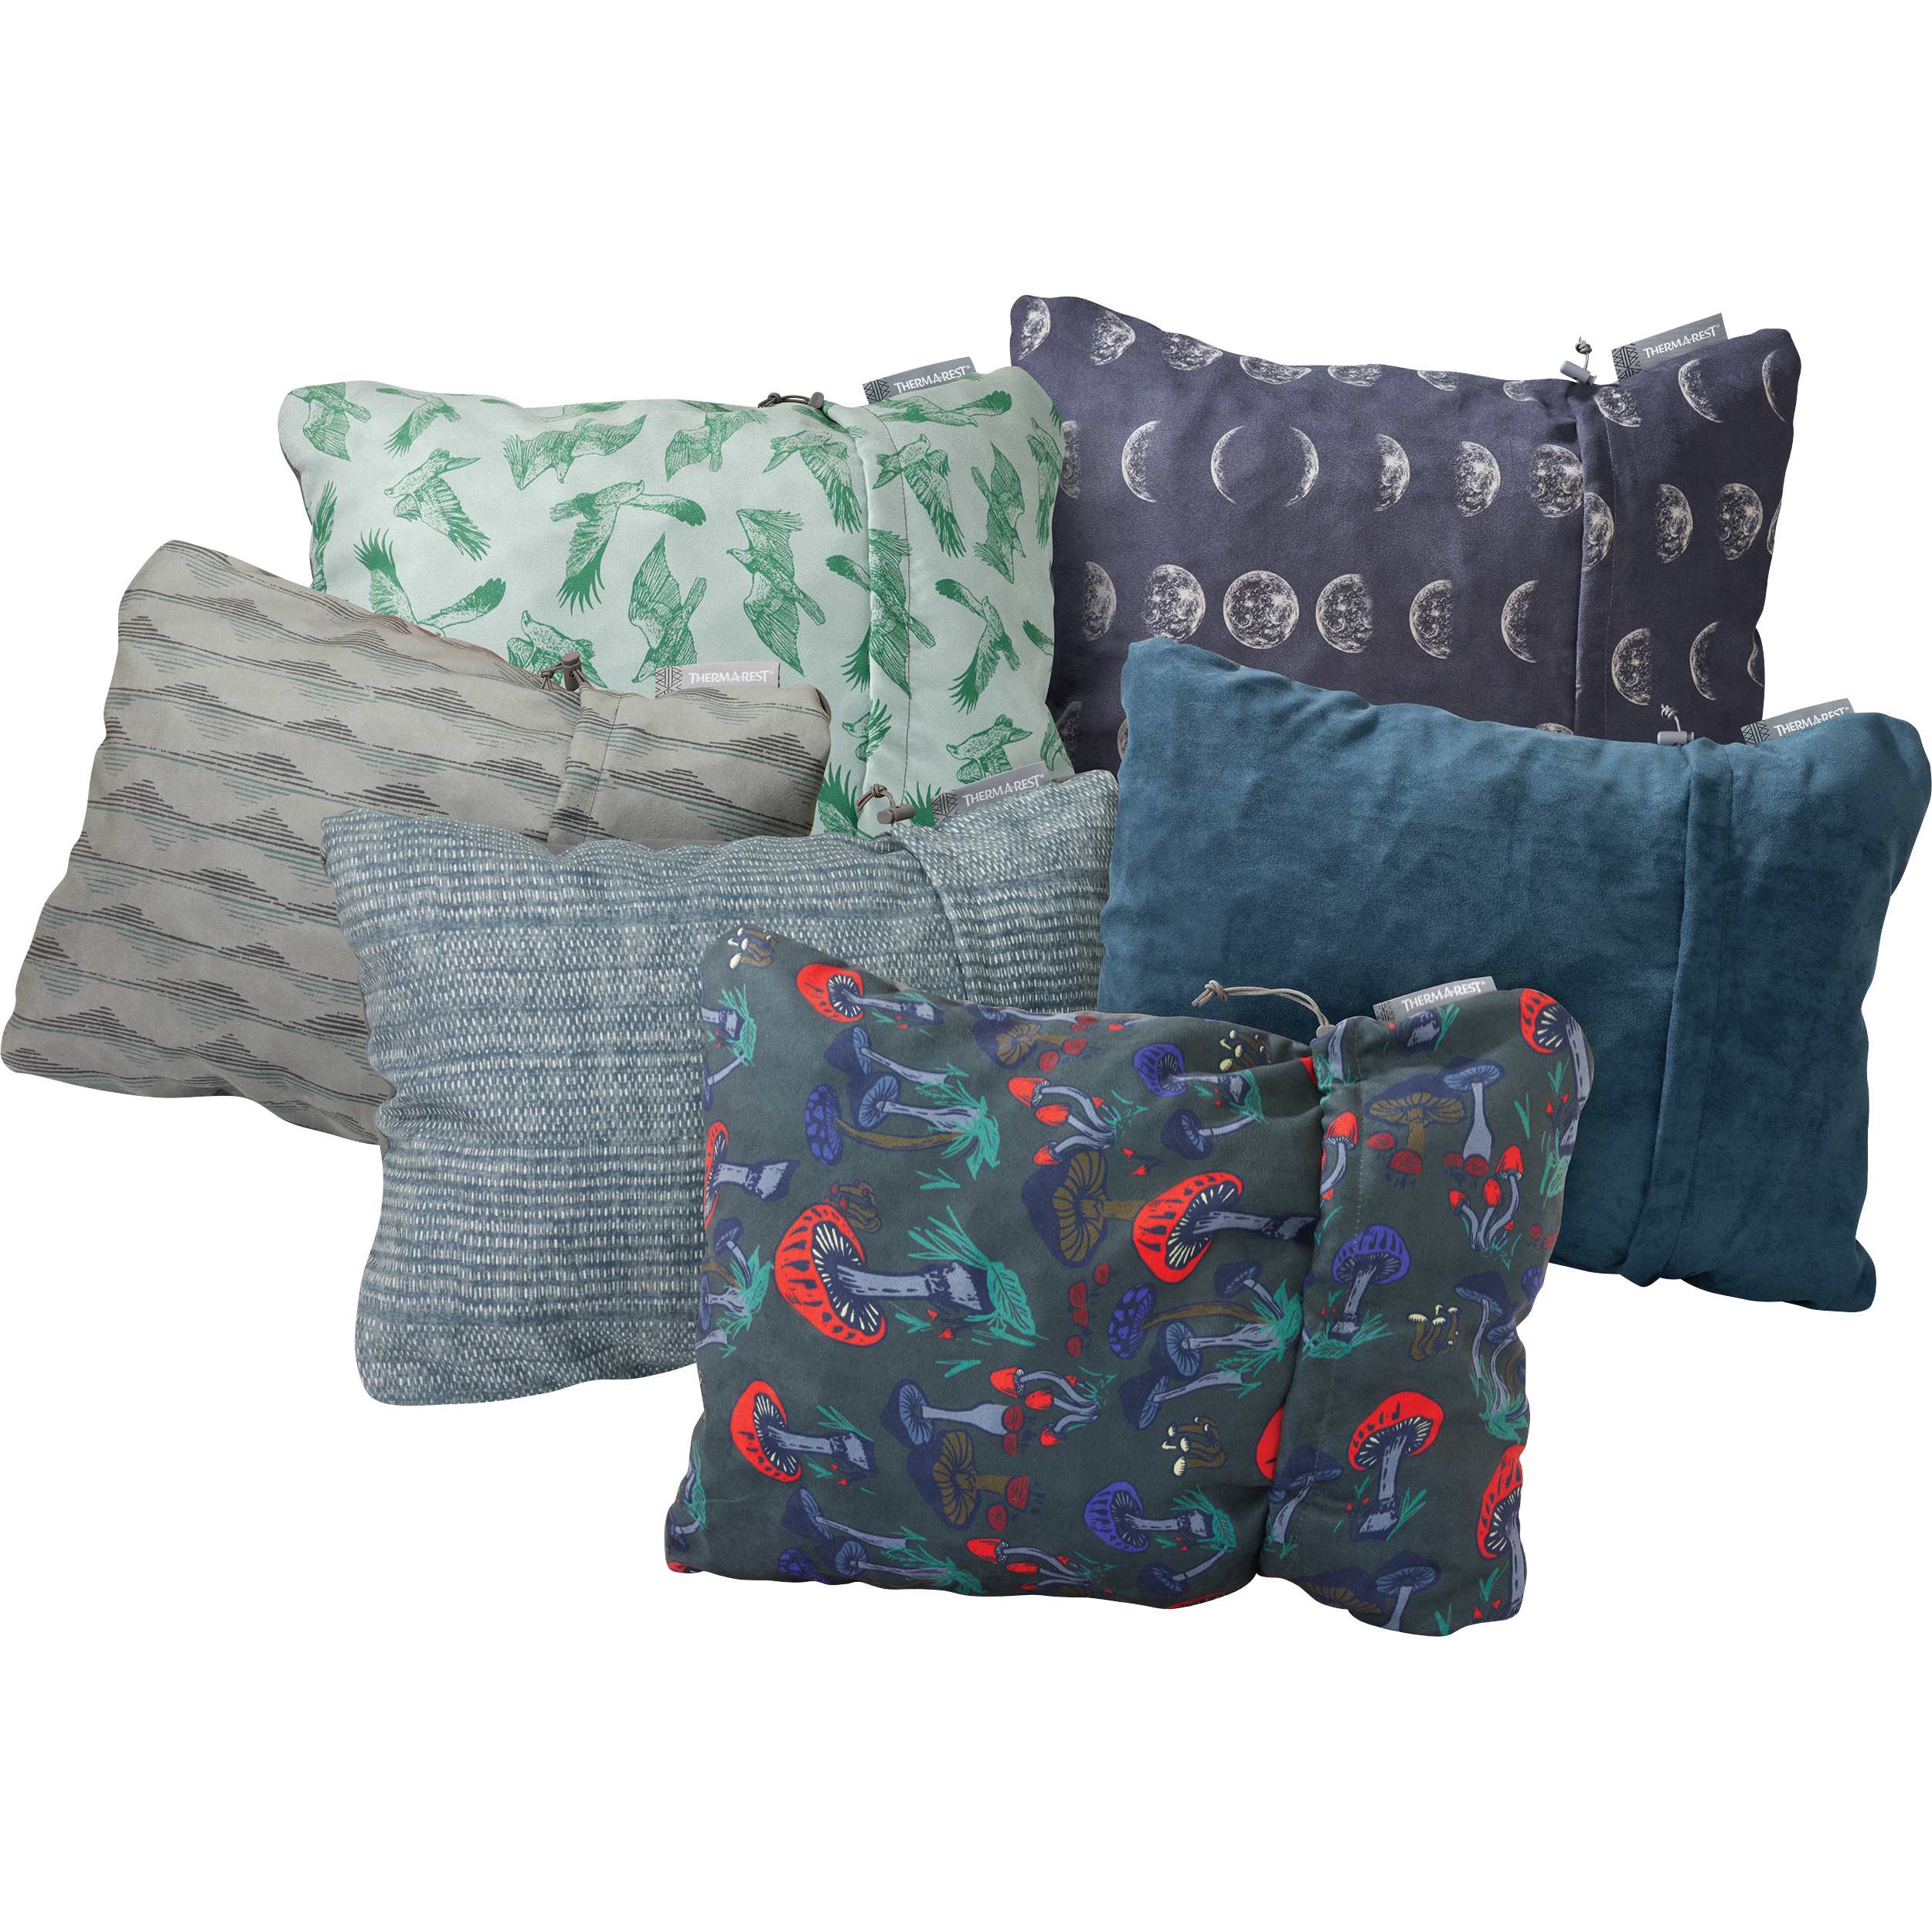 Compressible Pillow Recycled Foam Pillow Therm A Rest